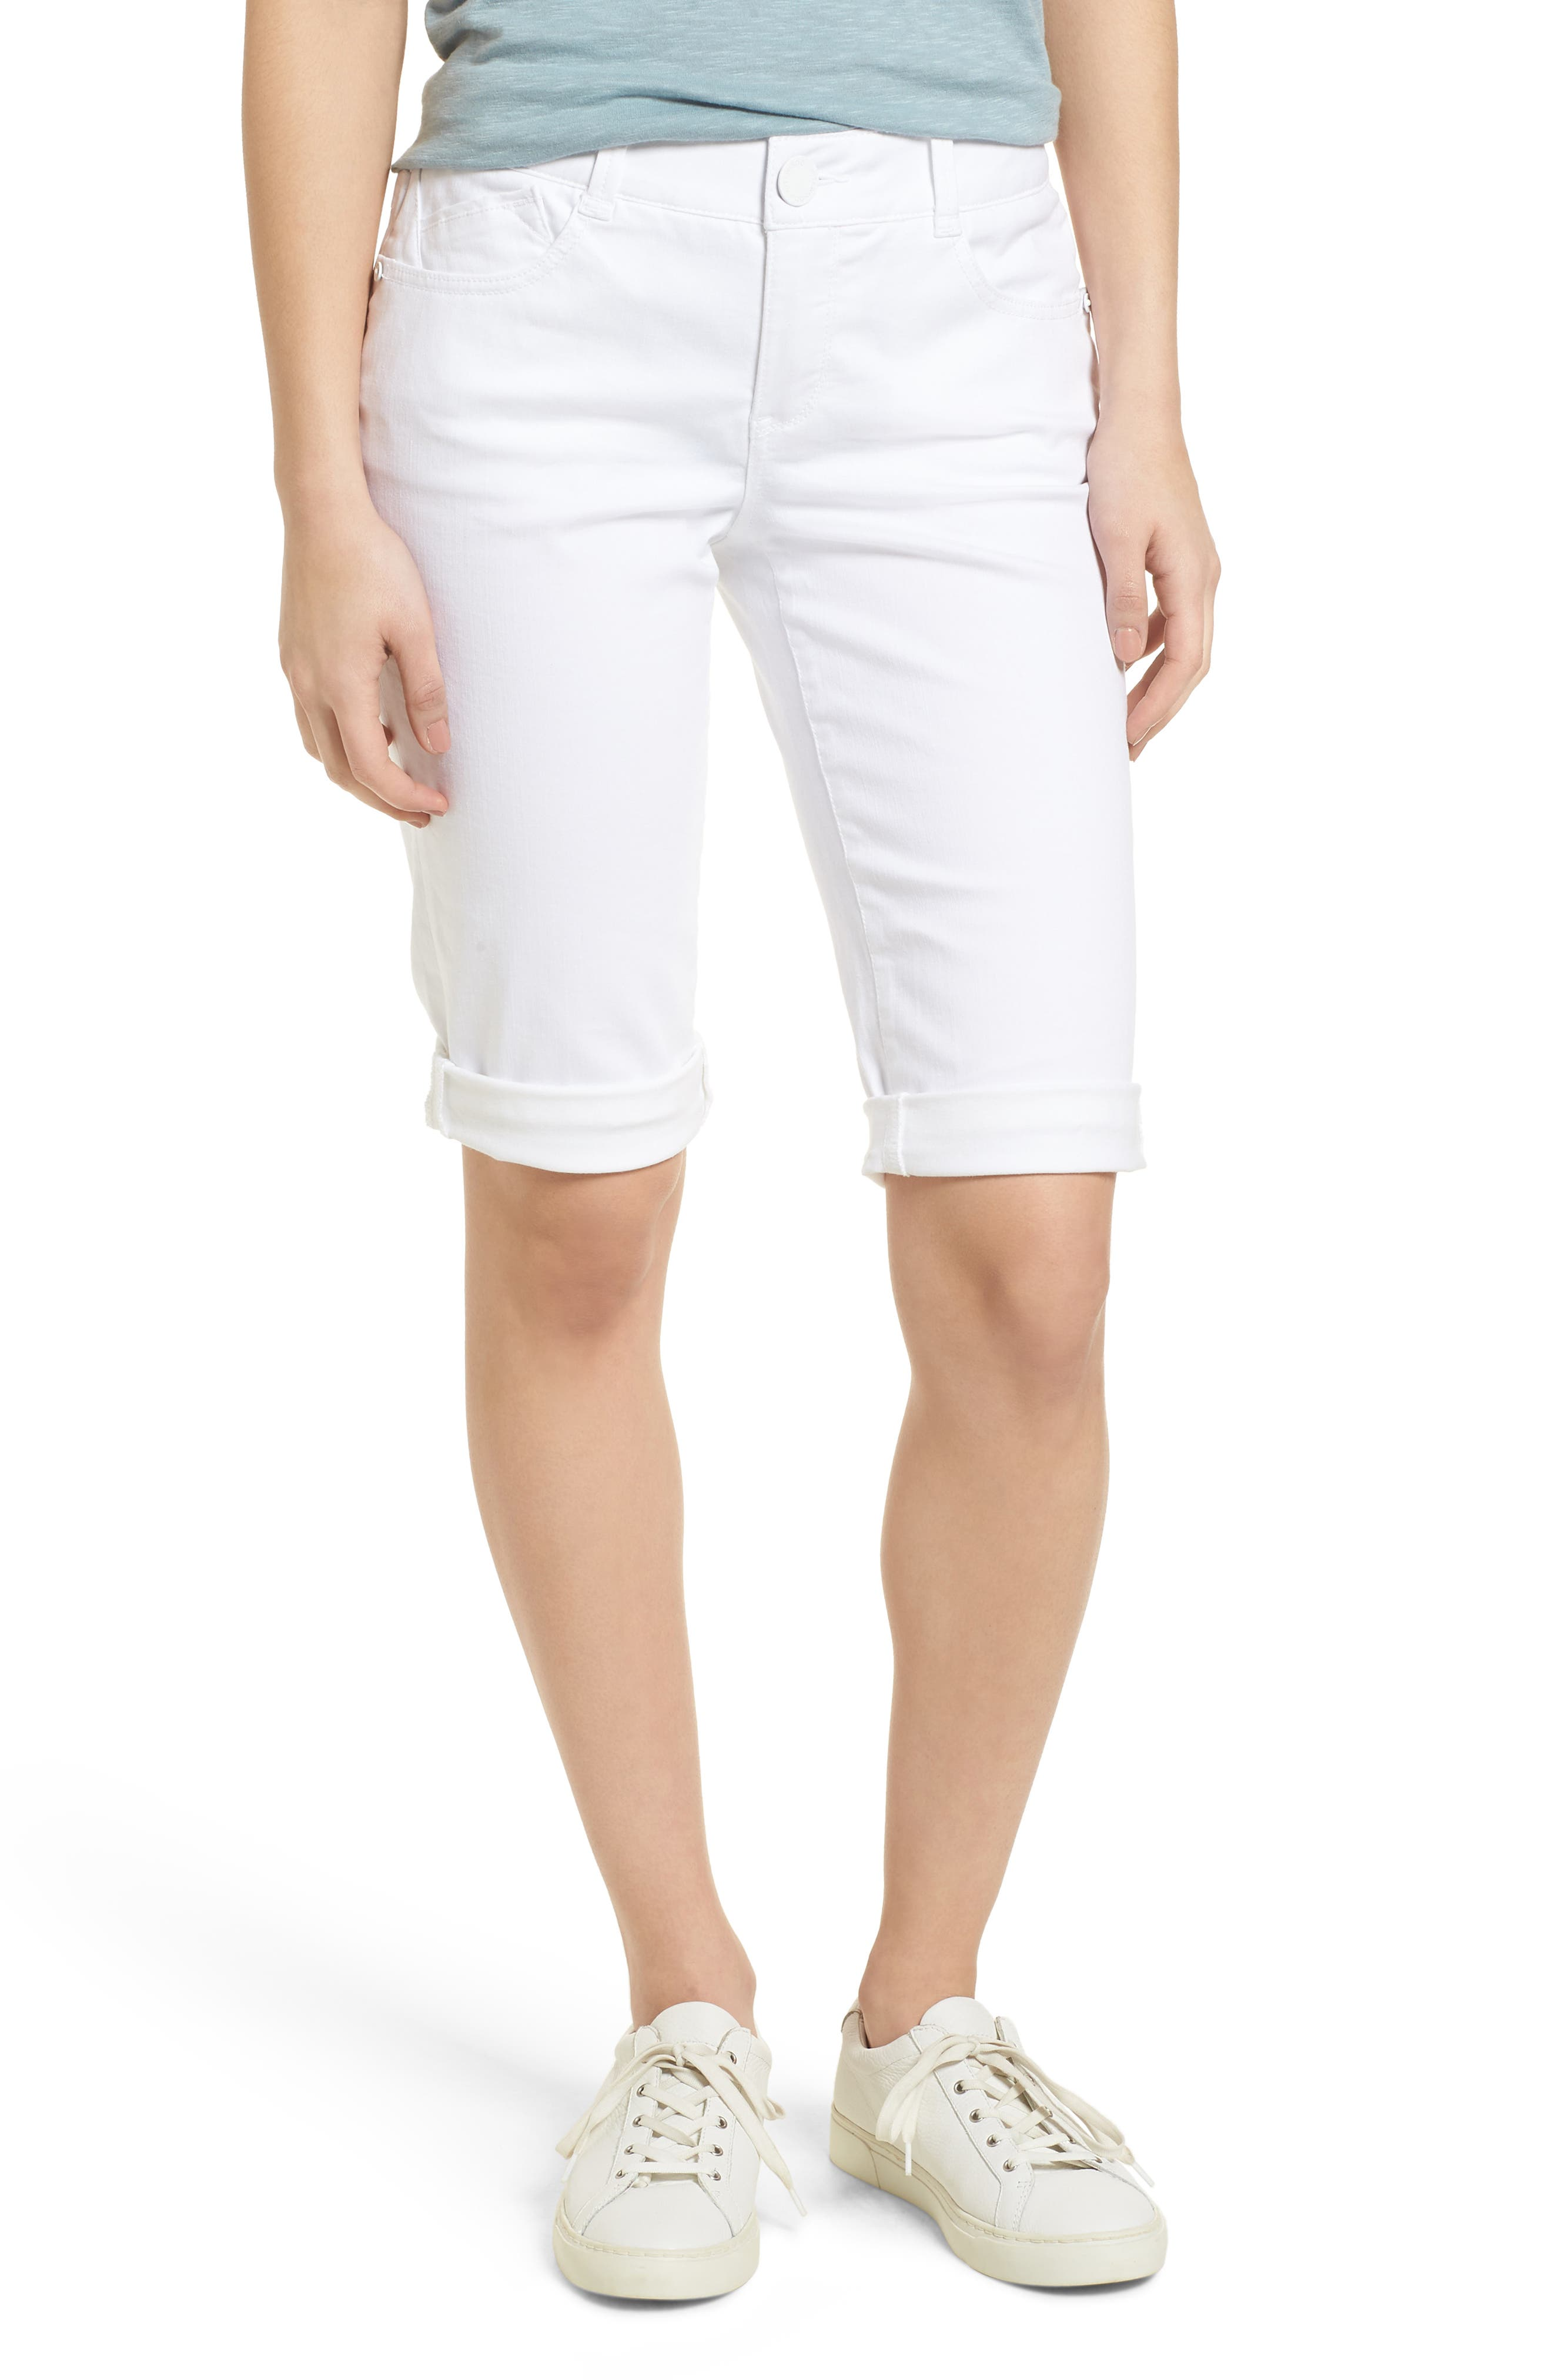 Women's Wit & Wisdom Ab-Solution White Bermuda Shorts